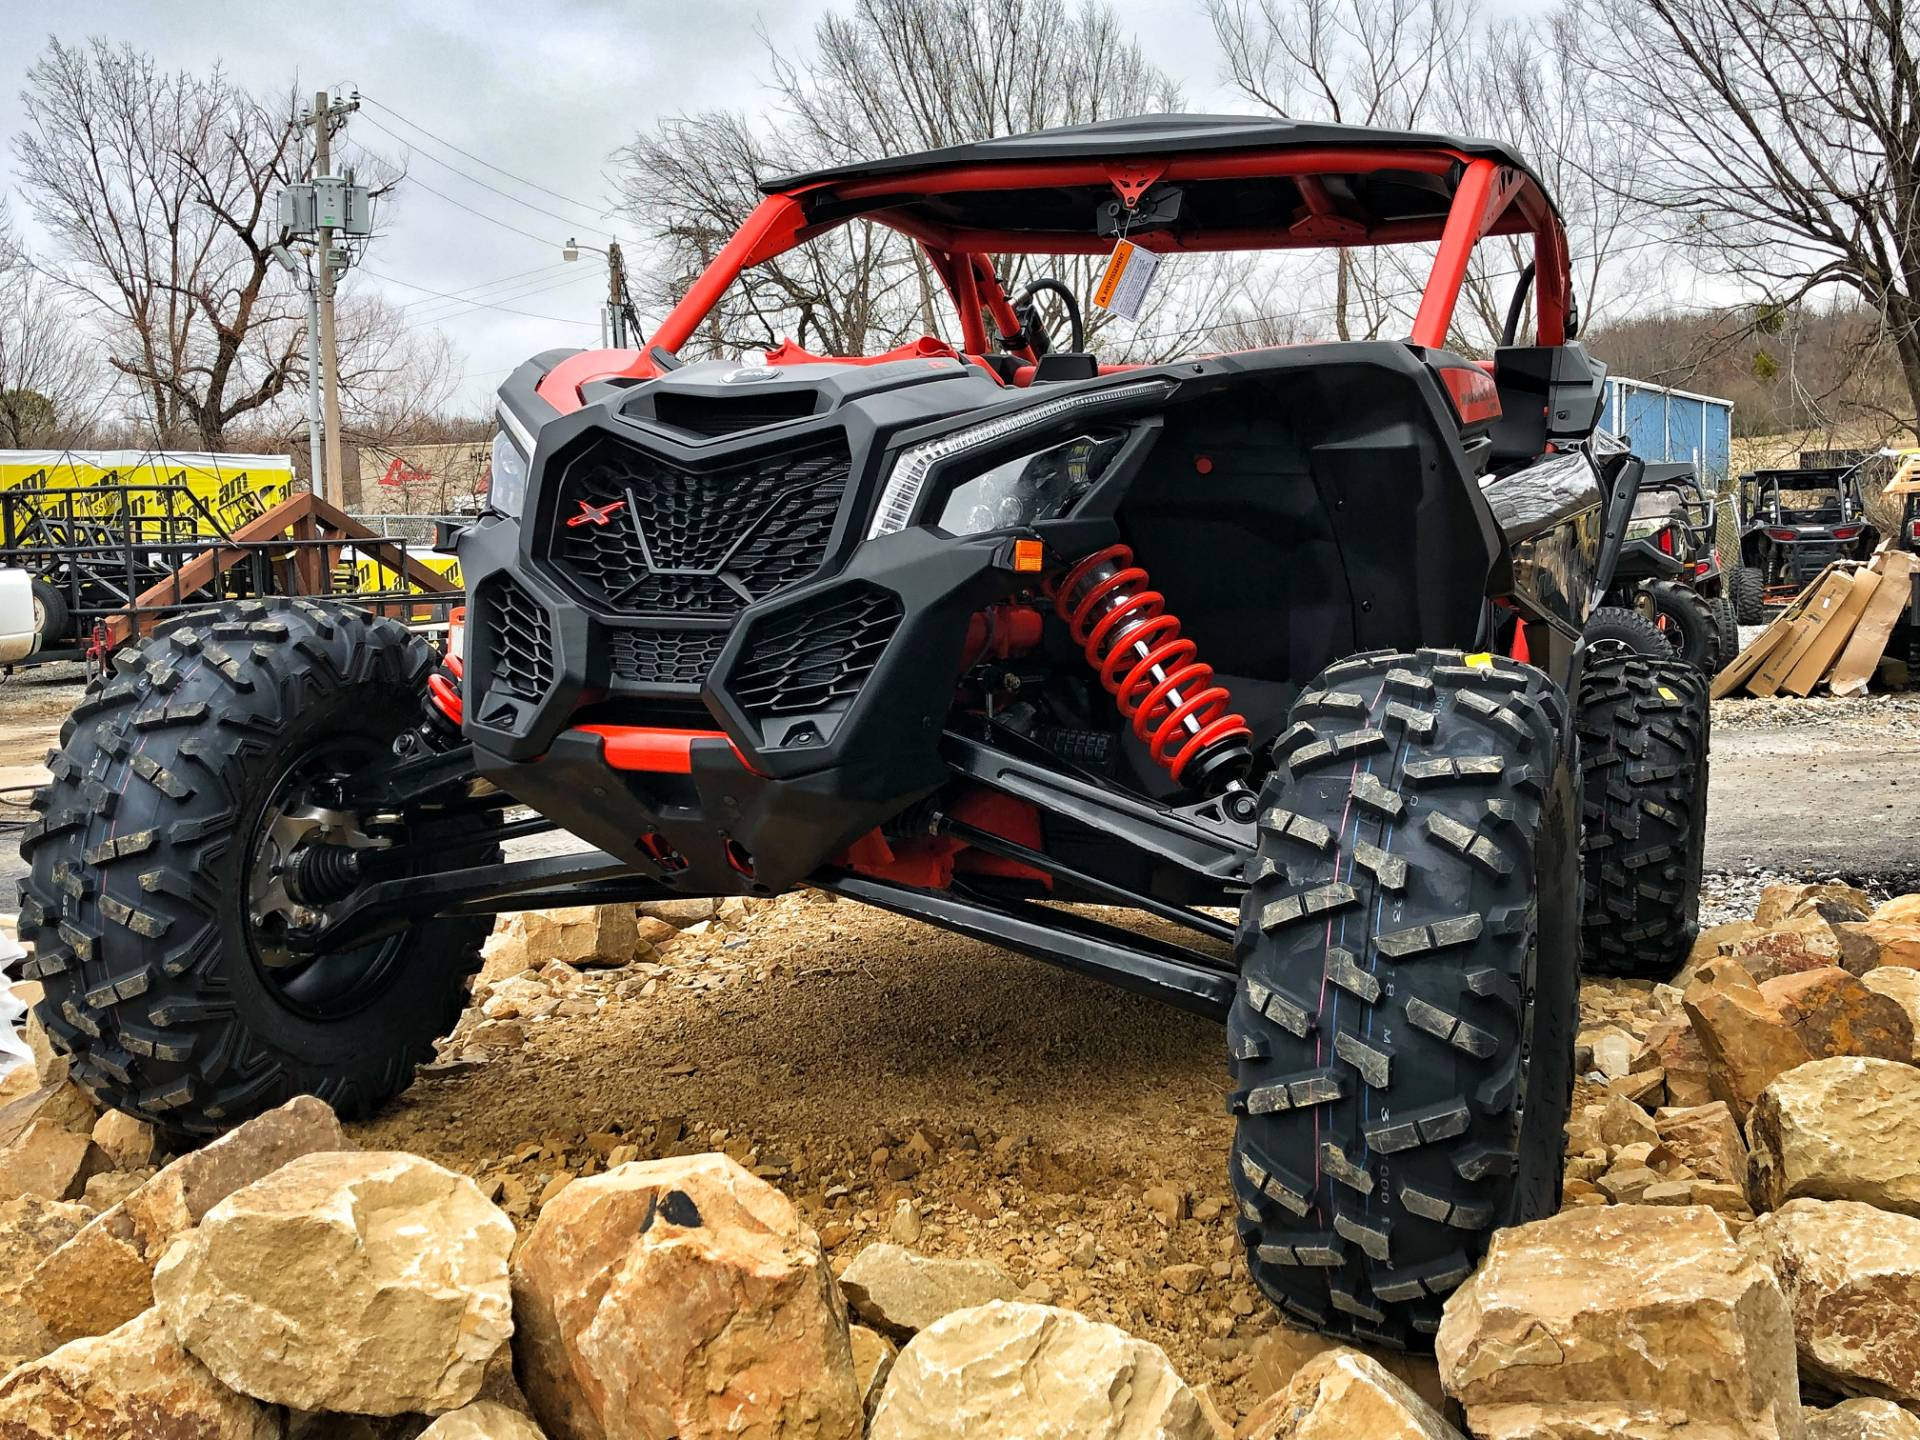 2018 Can-Am Maverick X3 X rs Turbo R in McAlester, Oklahoma